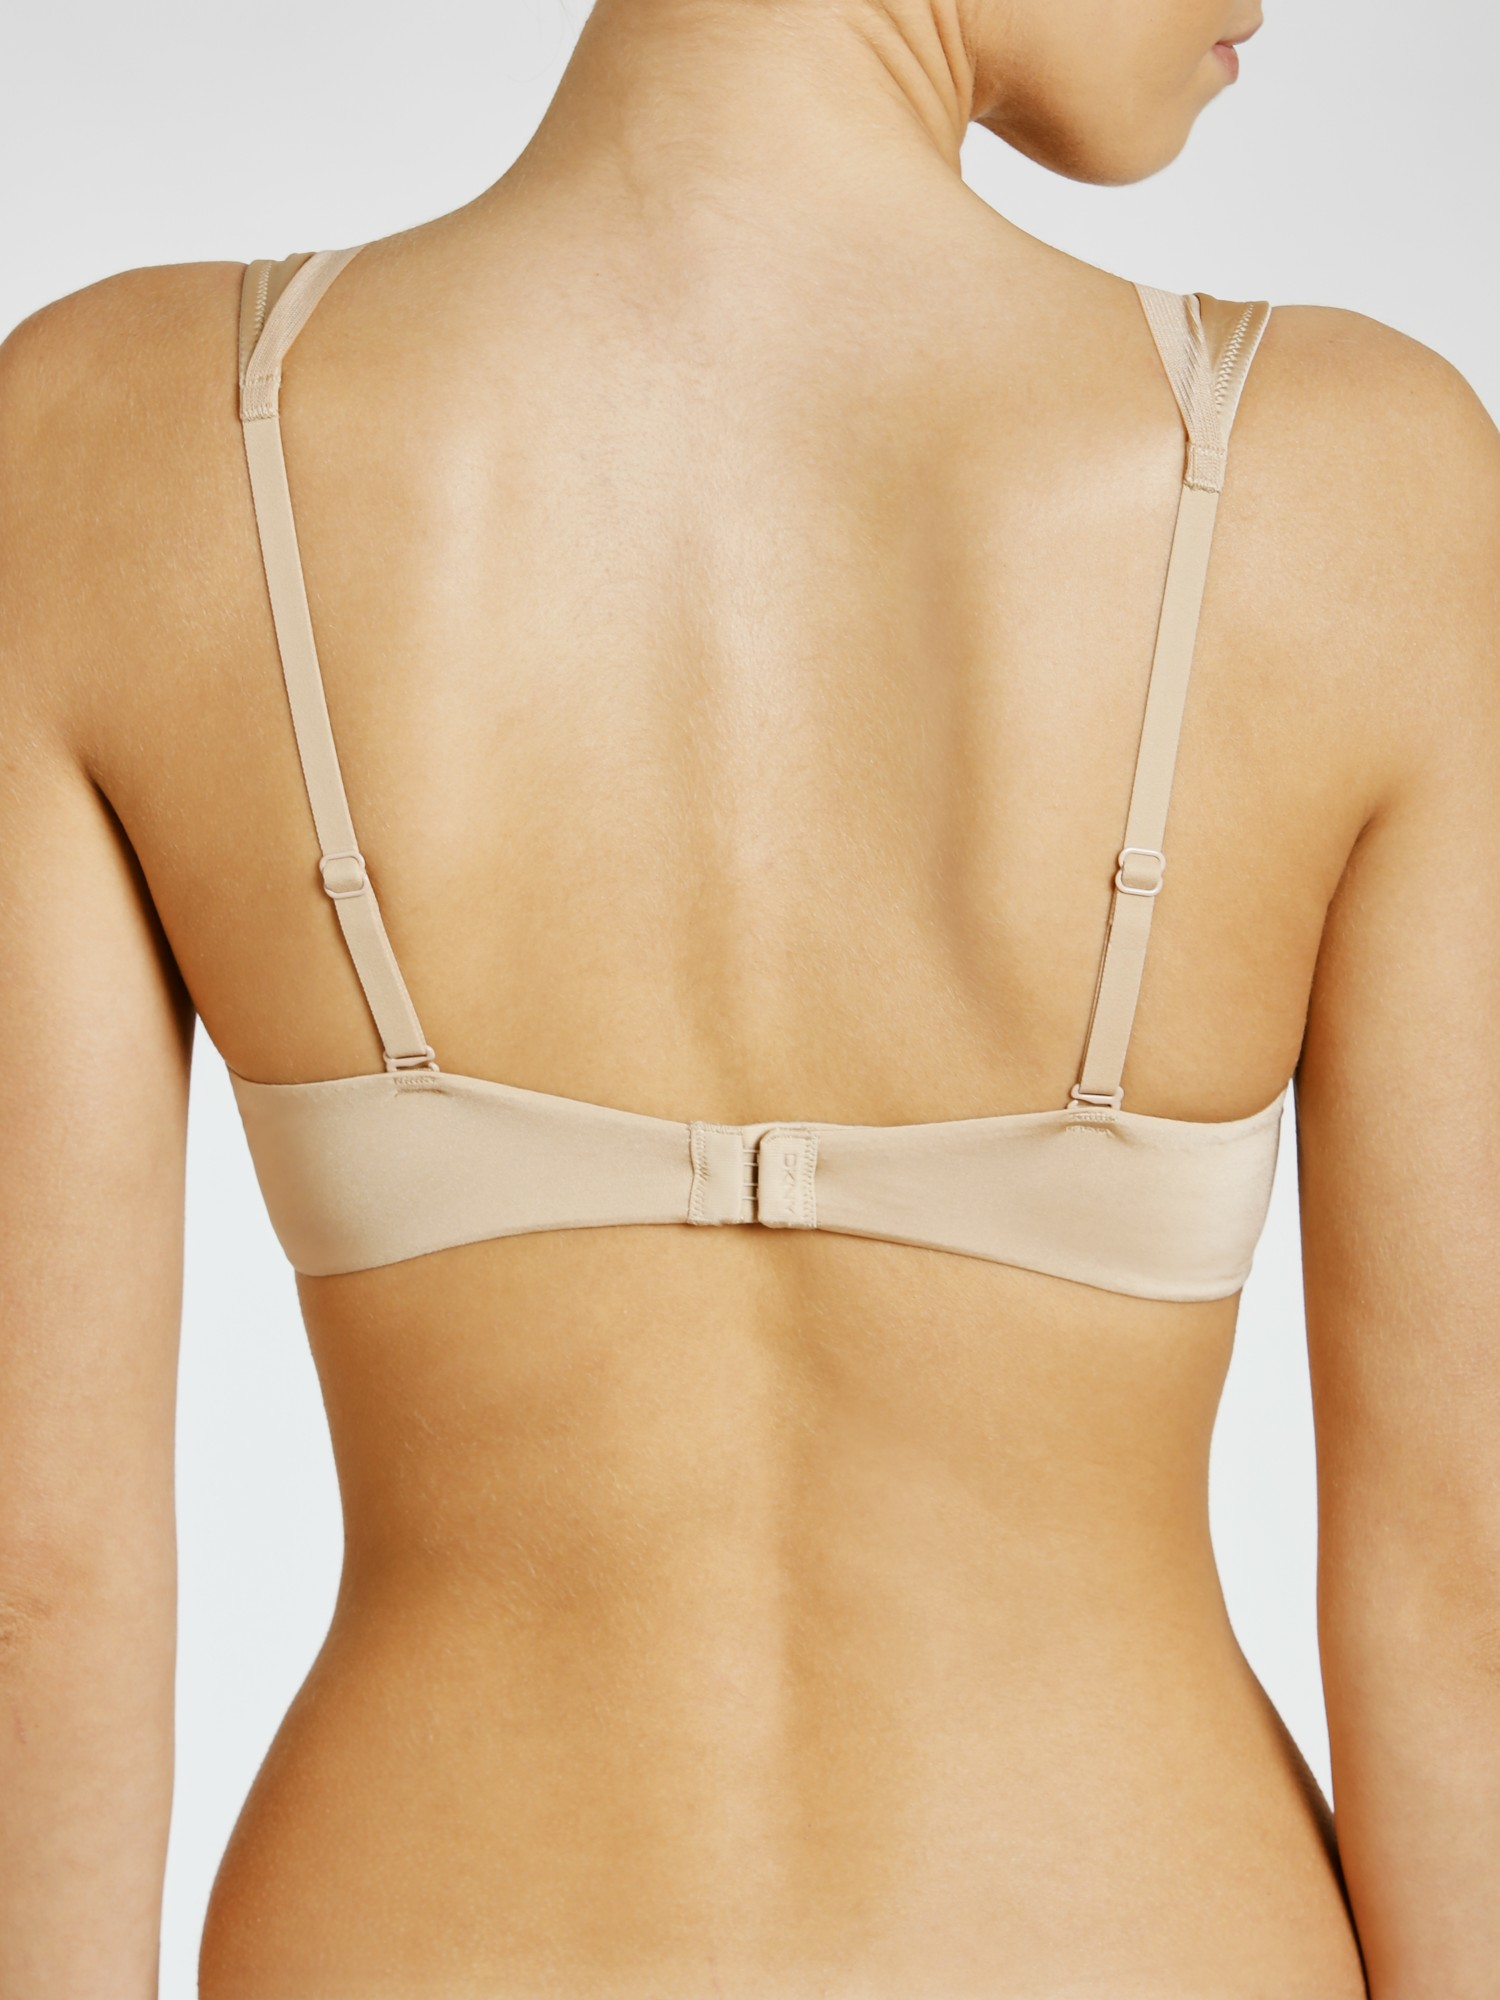 dd3ab58003e78 DKNY Signature Unlined Plunge Bra in Natural - Lyst